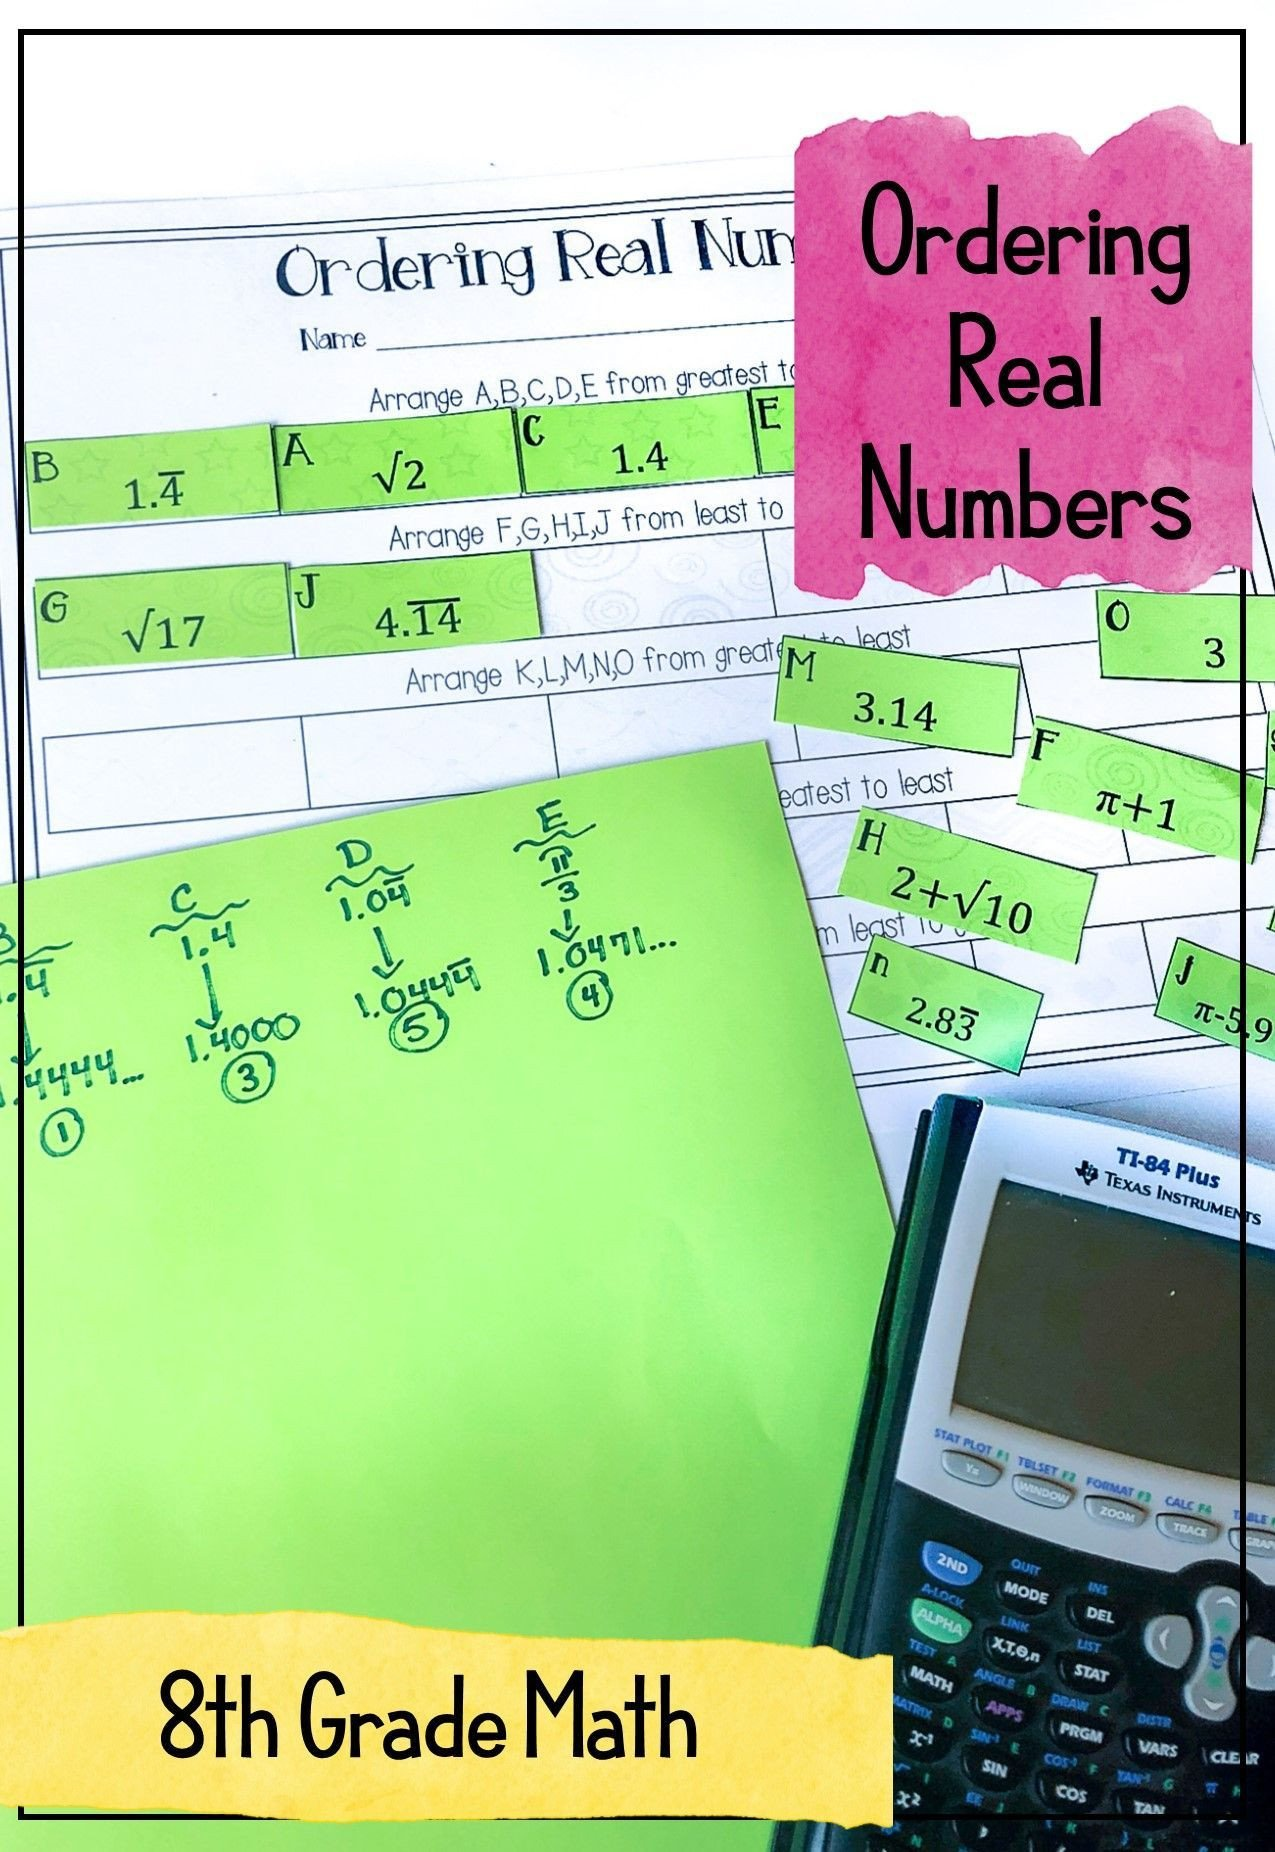 Real Numbers Worksheet 8th Grade My 8th Grade Math Students Loved This ordering Real Numbers